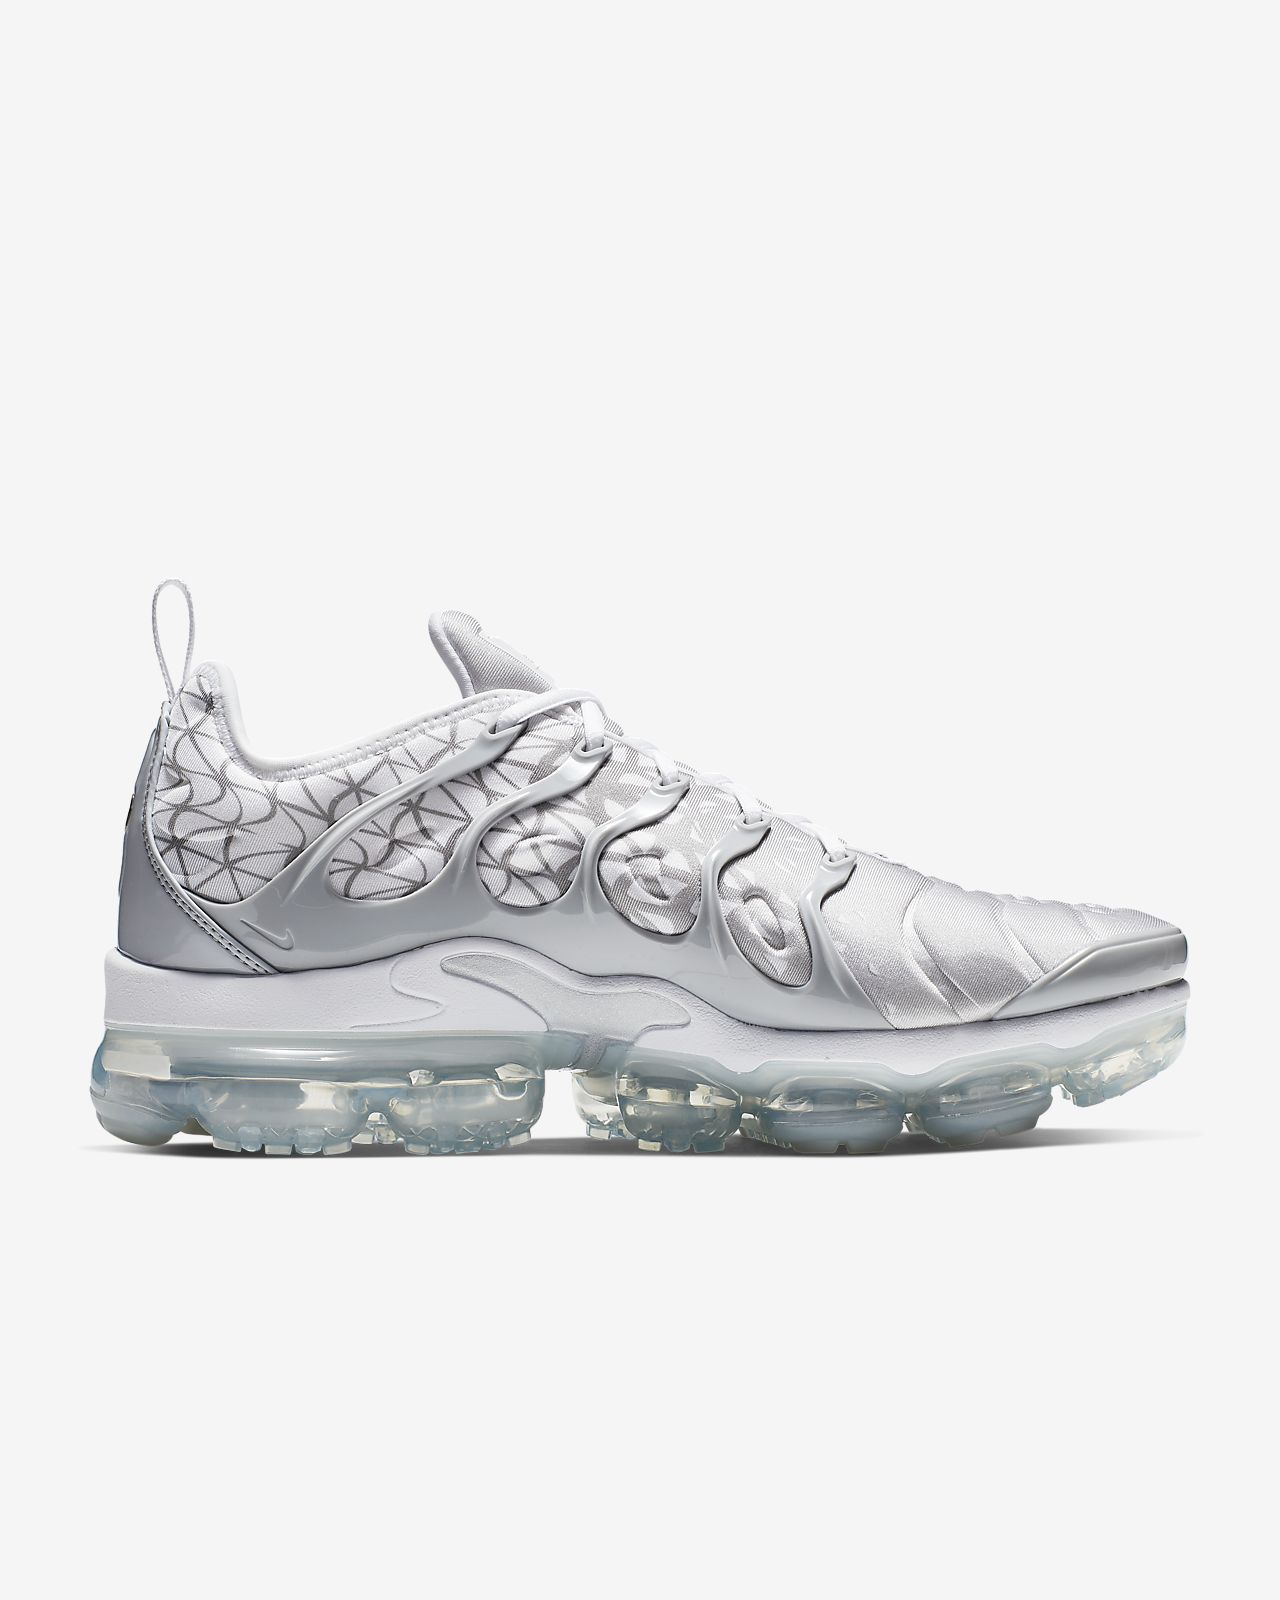 0c26041792 Nike Air VaporMax Plus Men's Shoe. Nike.com GB